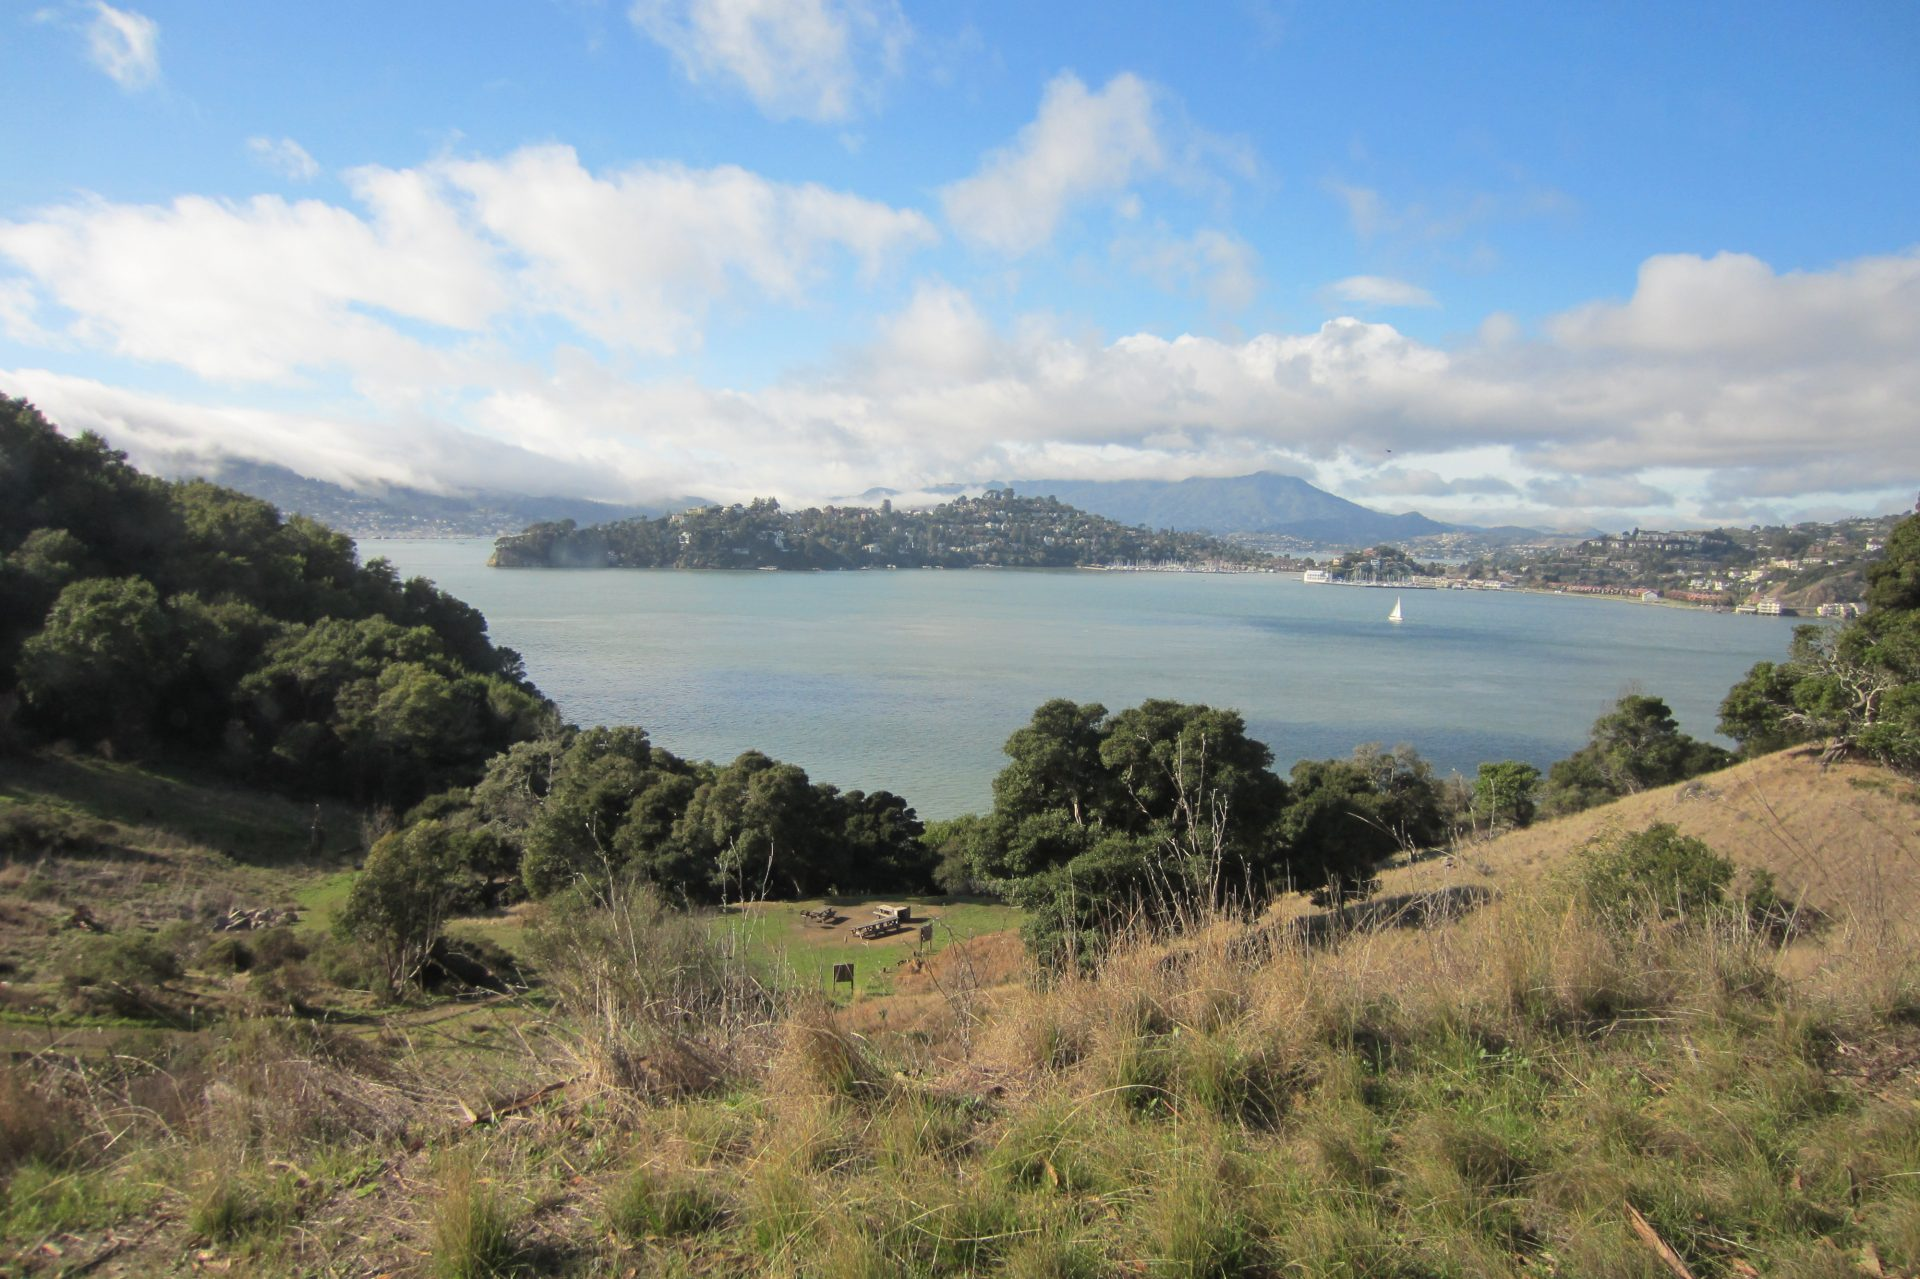 view from hills through trees to bay, Tiburon and Mt Tamalpais beyond